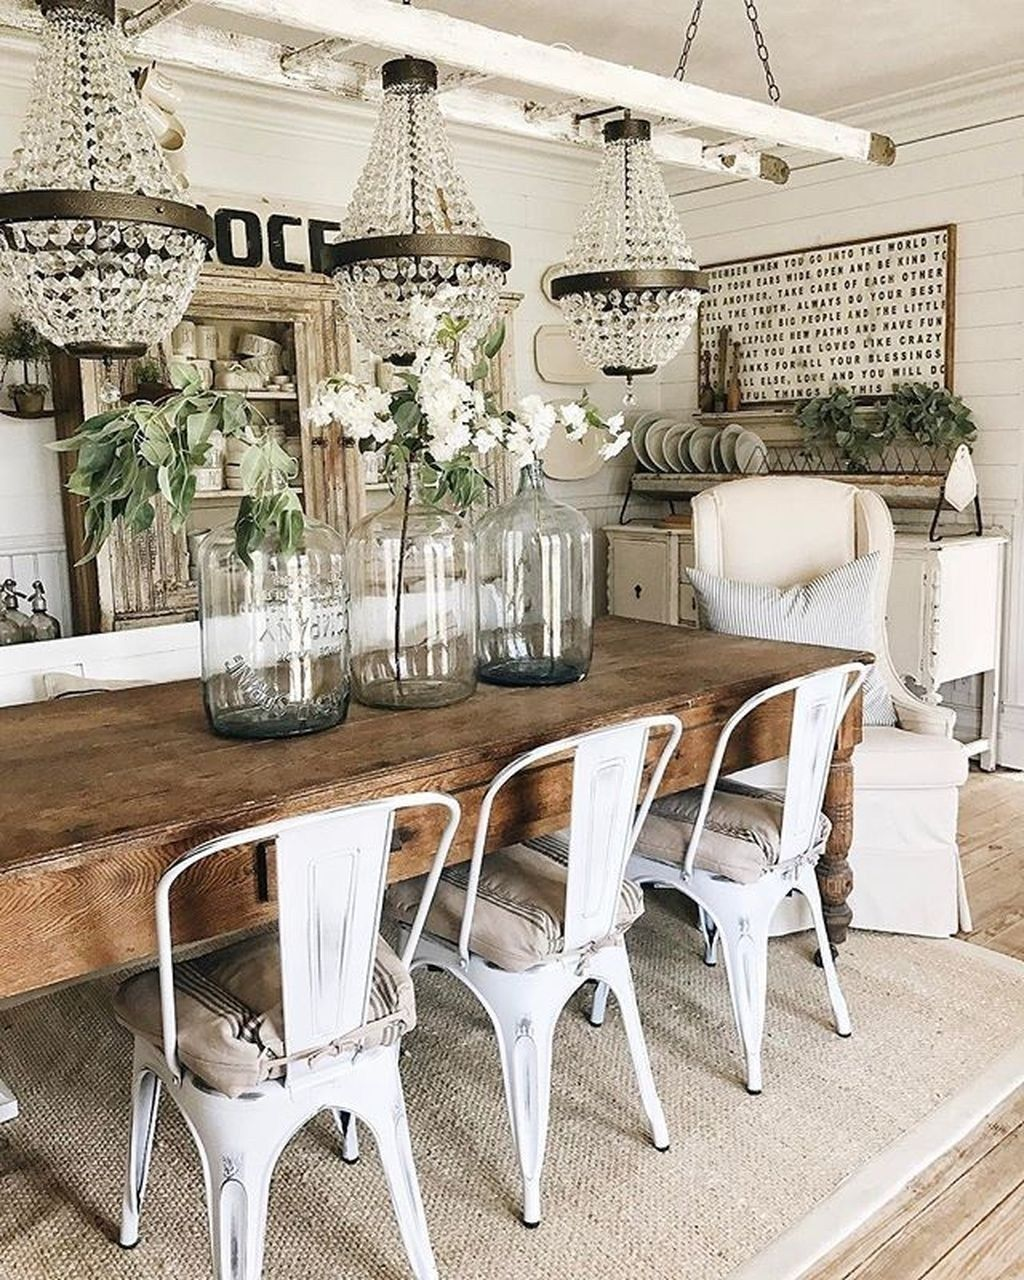 Top 11 Incredible Cozy And Rustic Chic Living Room For: Amazing Rustic Dining Room Table Decor Ideas 33